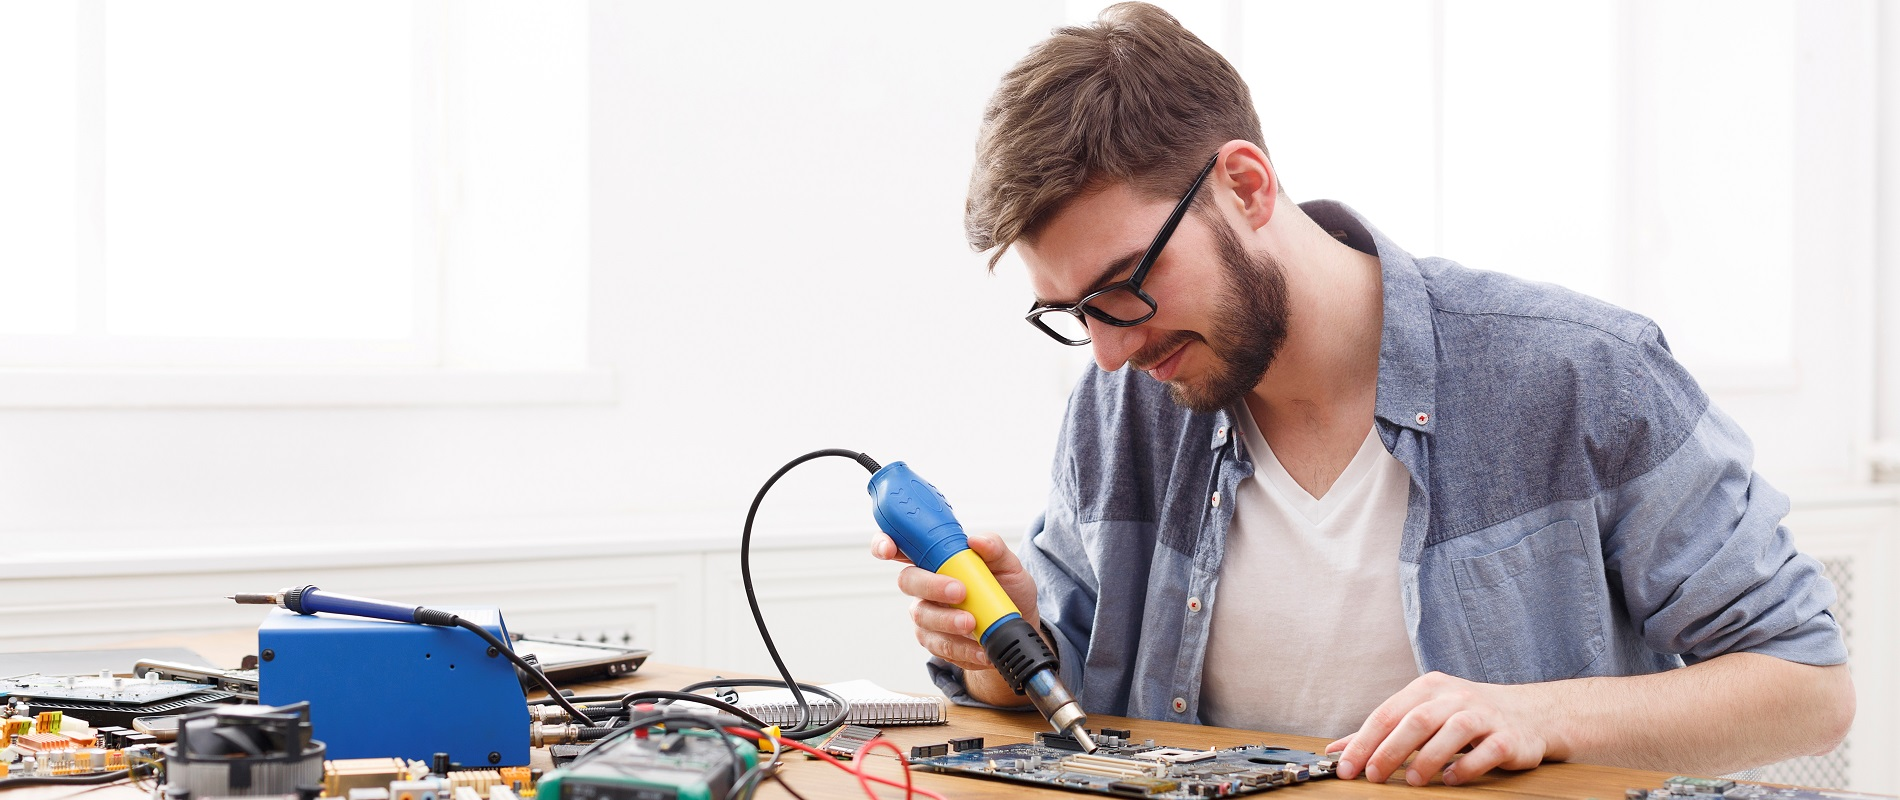 Electronic Engineering iStock-871602190